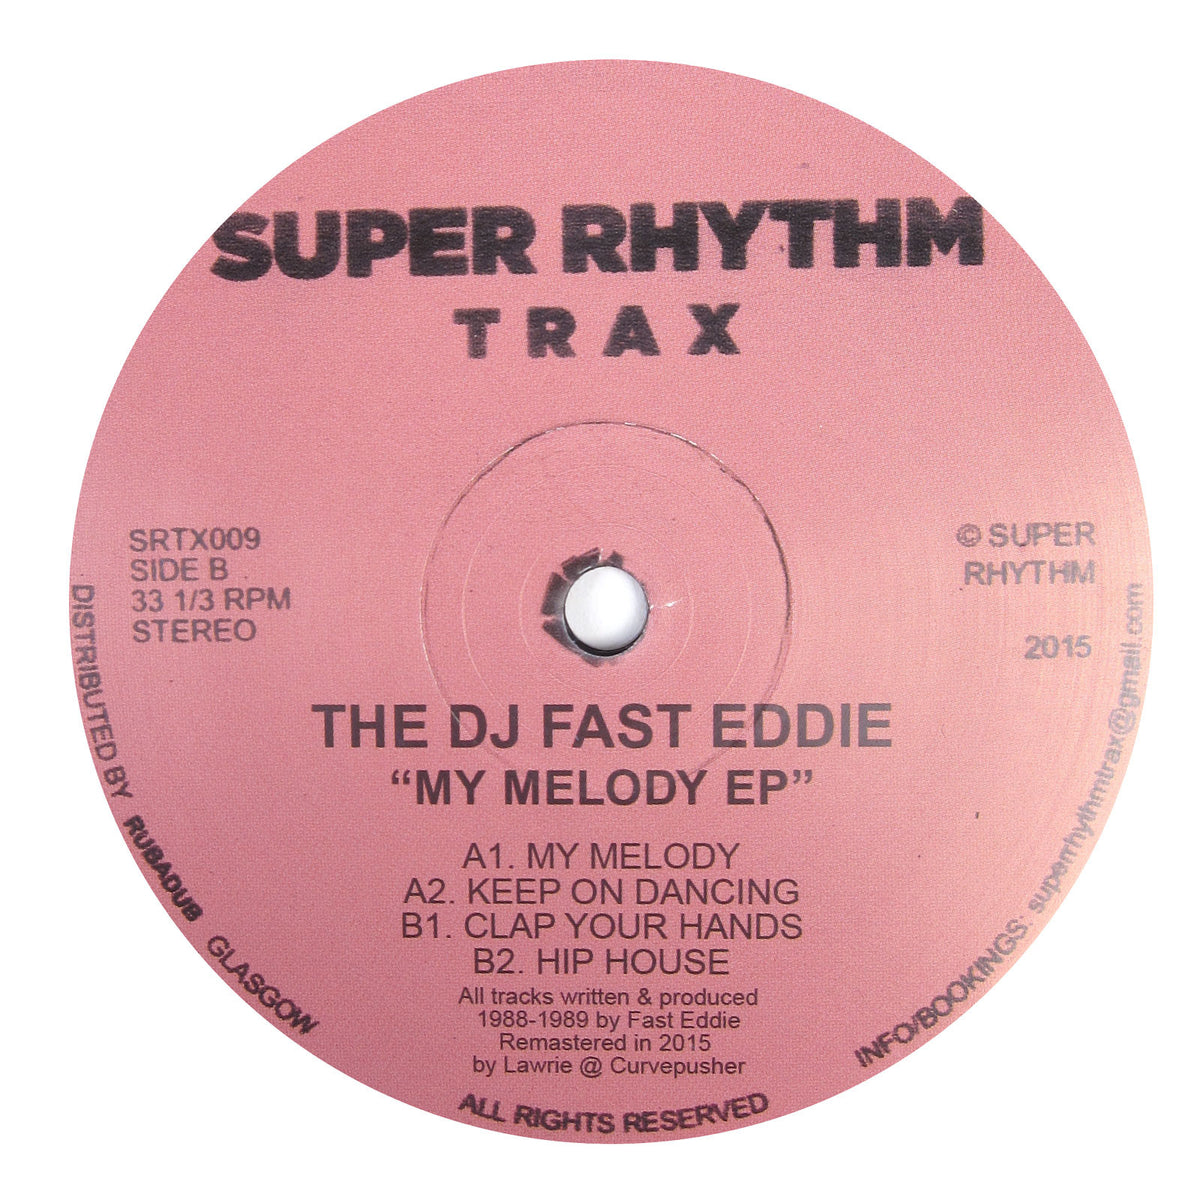 The Deejay Fast Eddie: My Melody EP Vinyl 12""